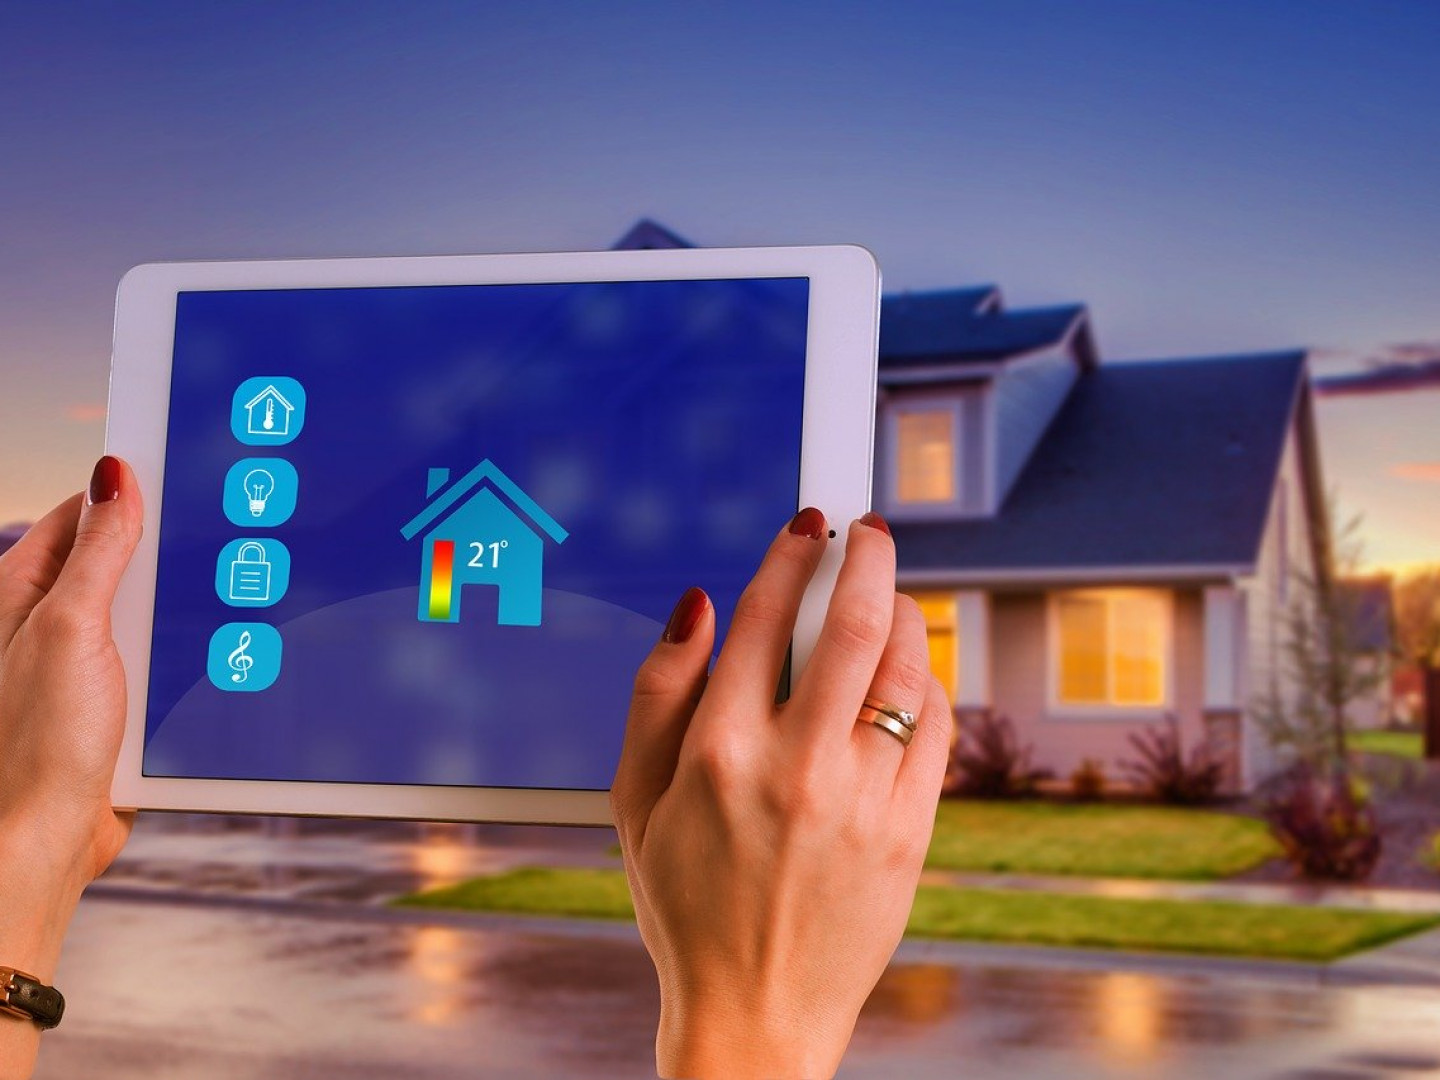 What can be looped into your smart home system?